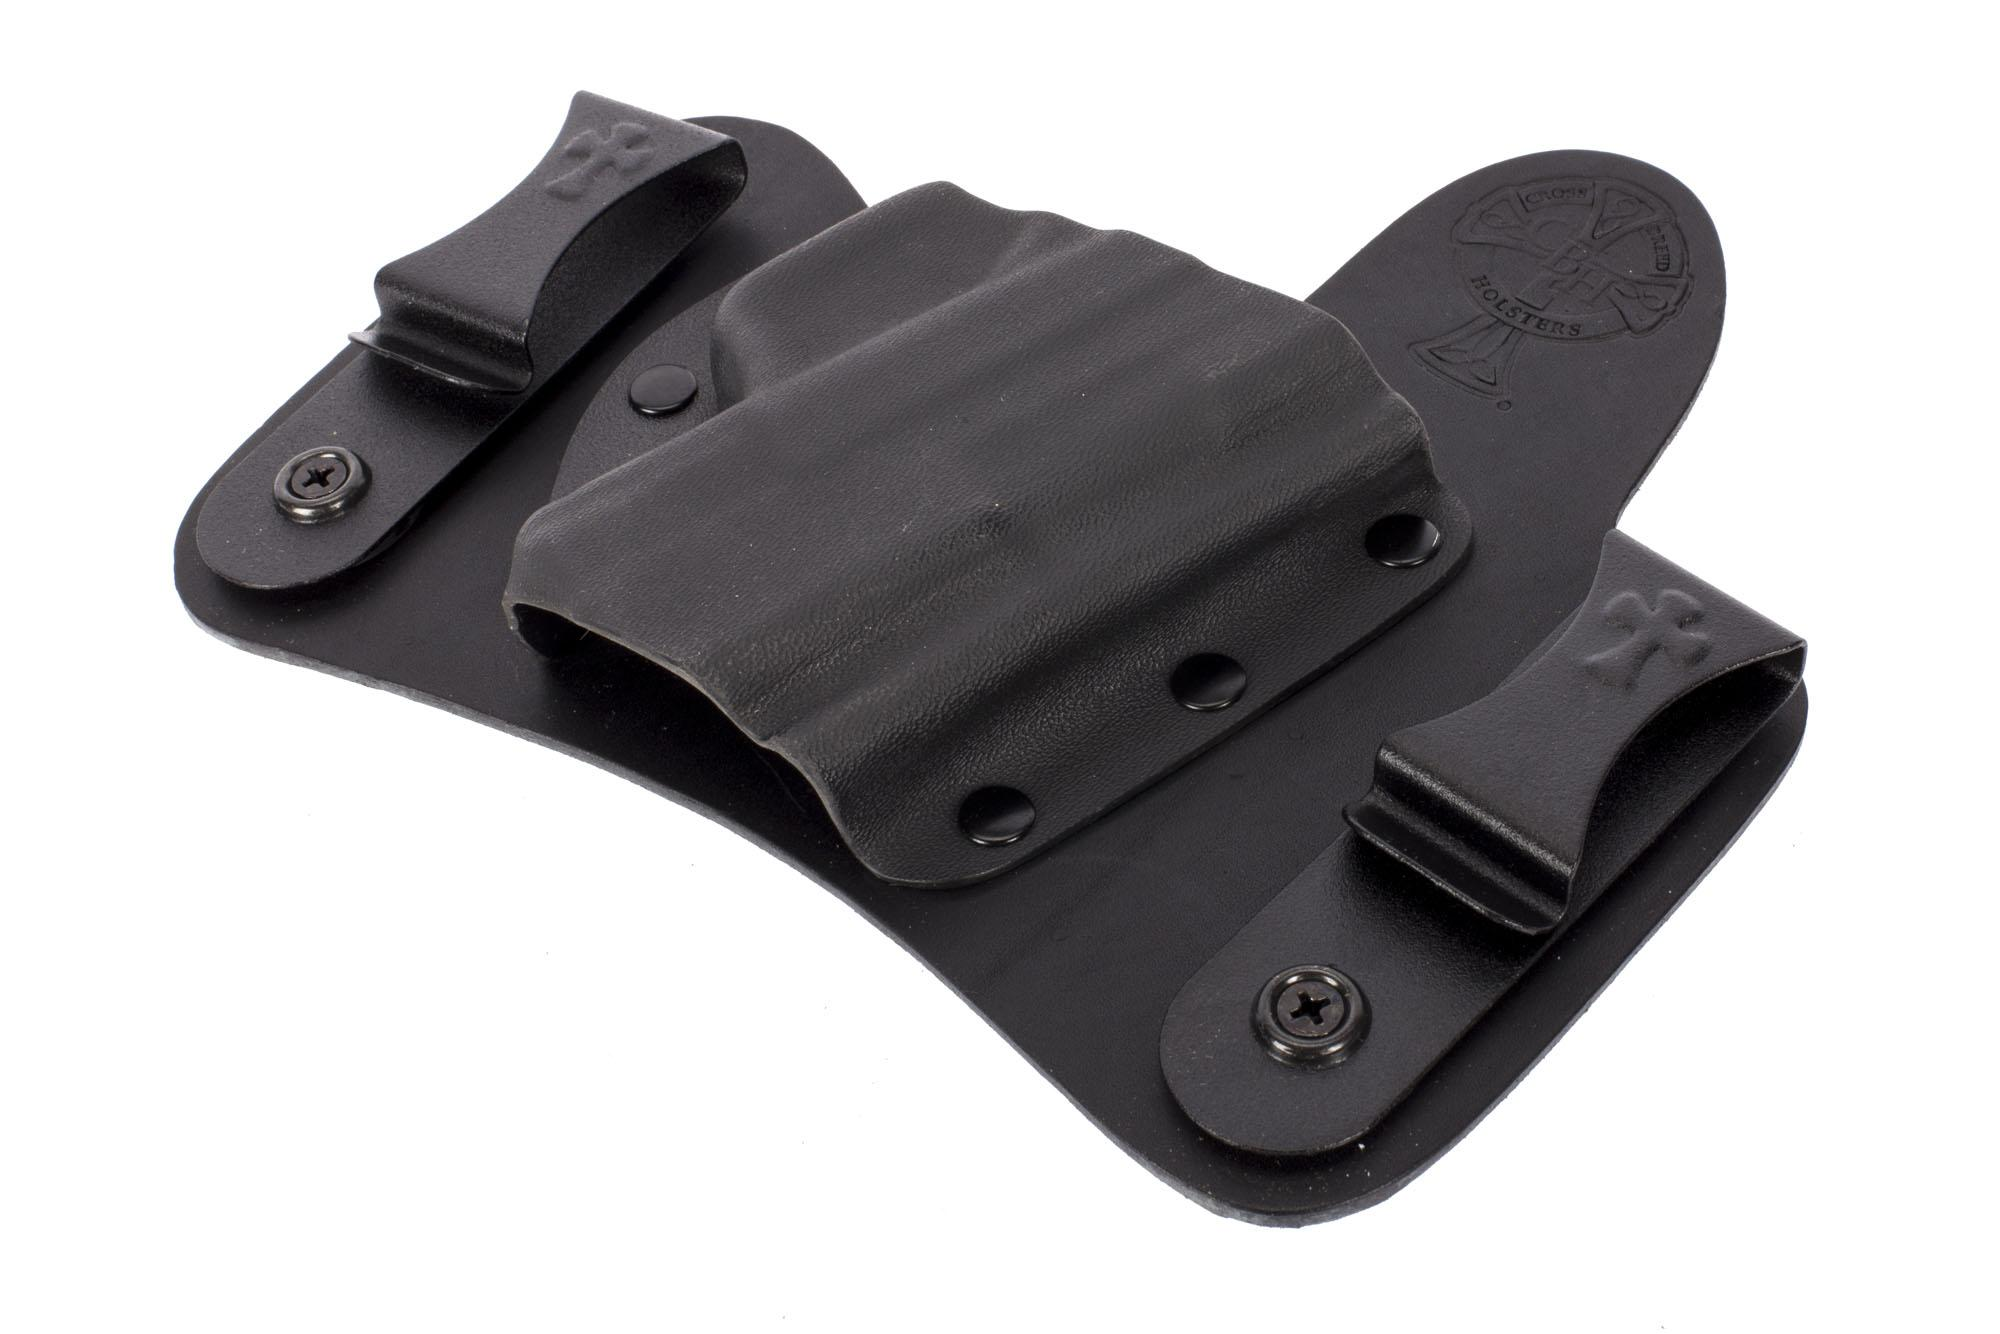 CrossBreed Holsters MiniTuck IWB Holster - Springfield XDS 3.3 9mm & .45 ACP